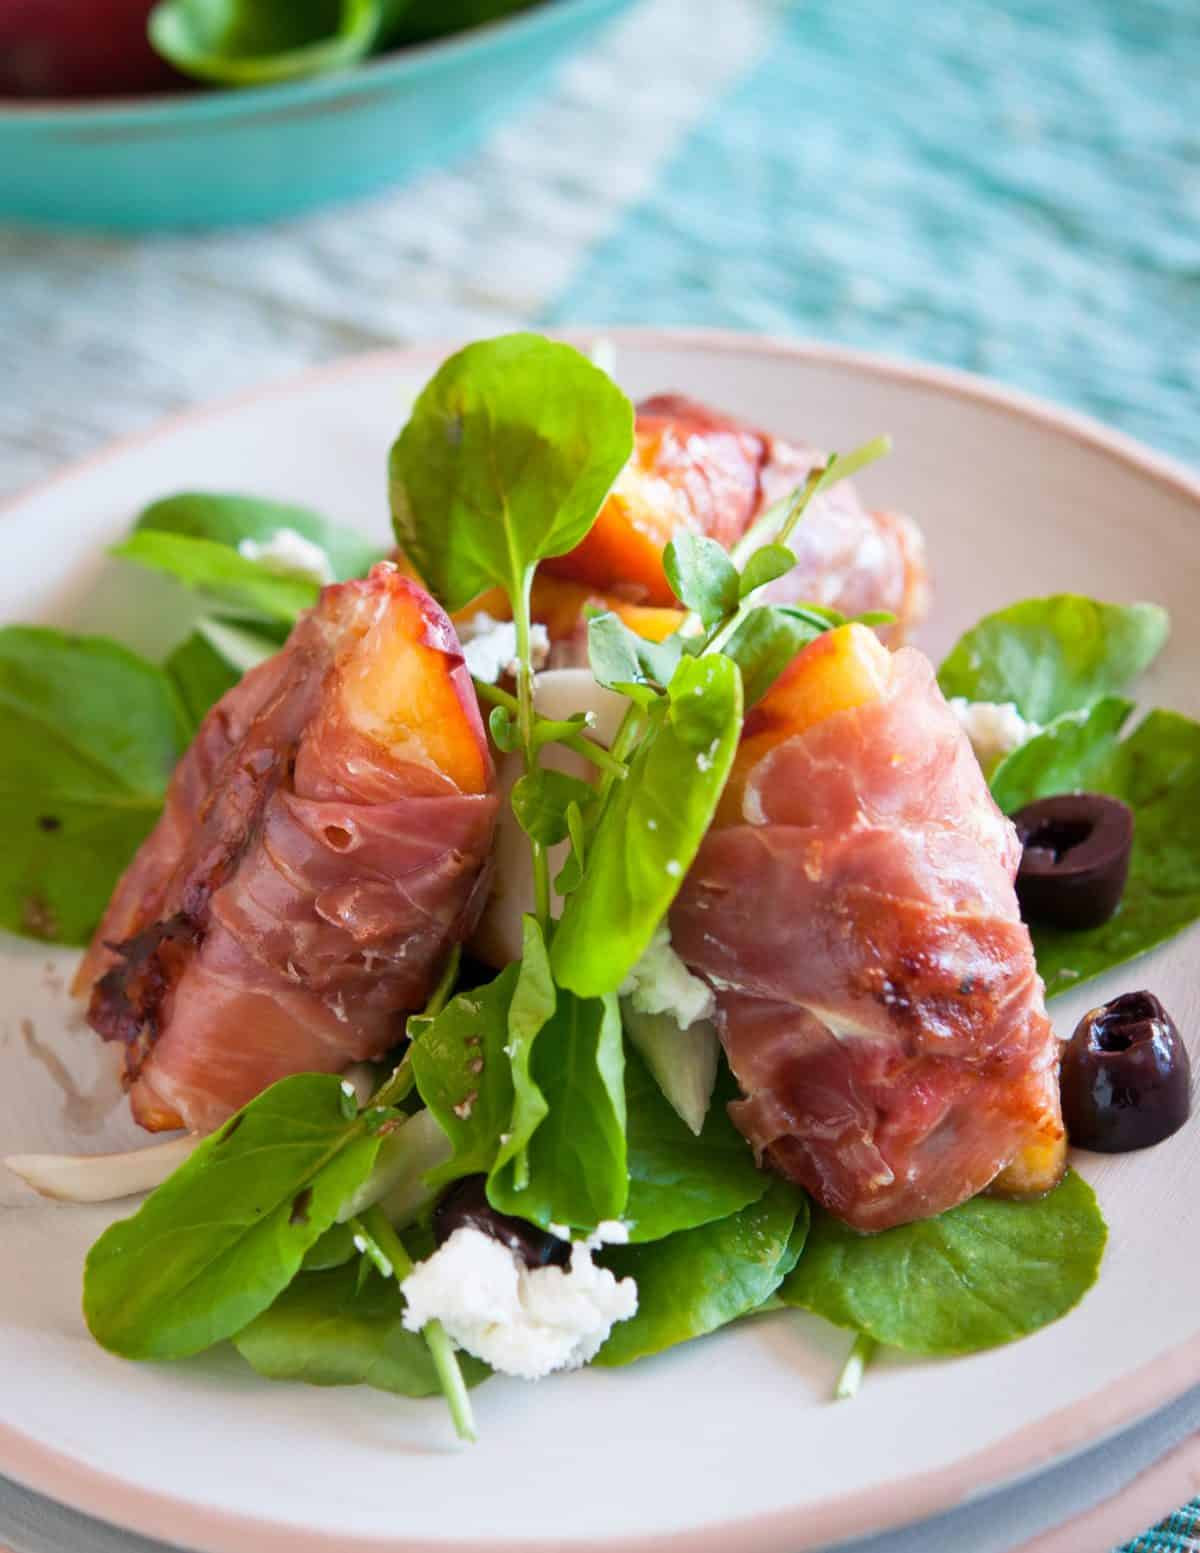 Grilled-Peach-Salad-Prosciutto-Goat-Cheese-everydaysouthwest.com